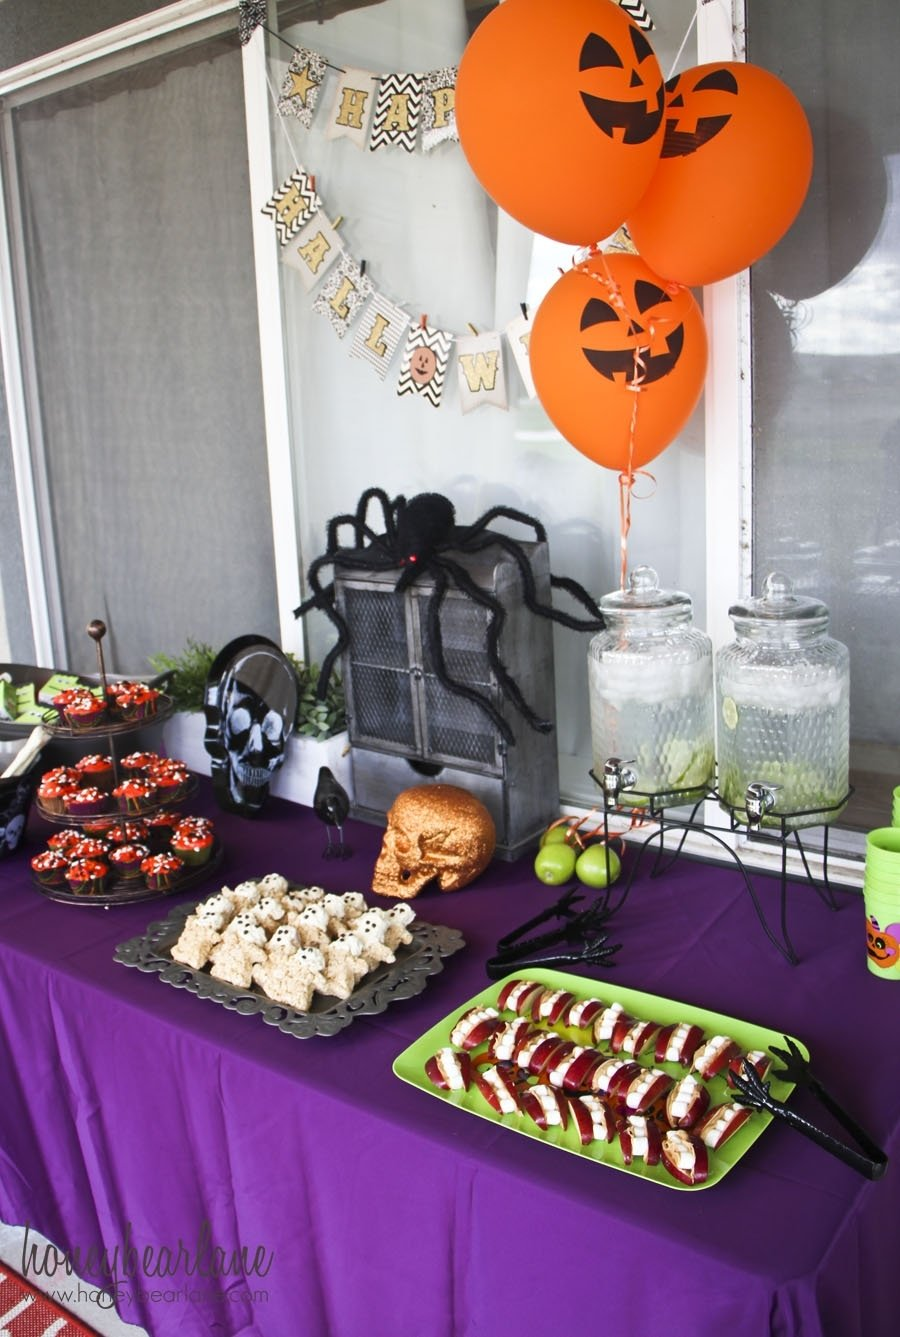 10 Wonderful Halloween Party Ideas For Preschoolers especial halloween party supplies tableware balloons decorations 2020